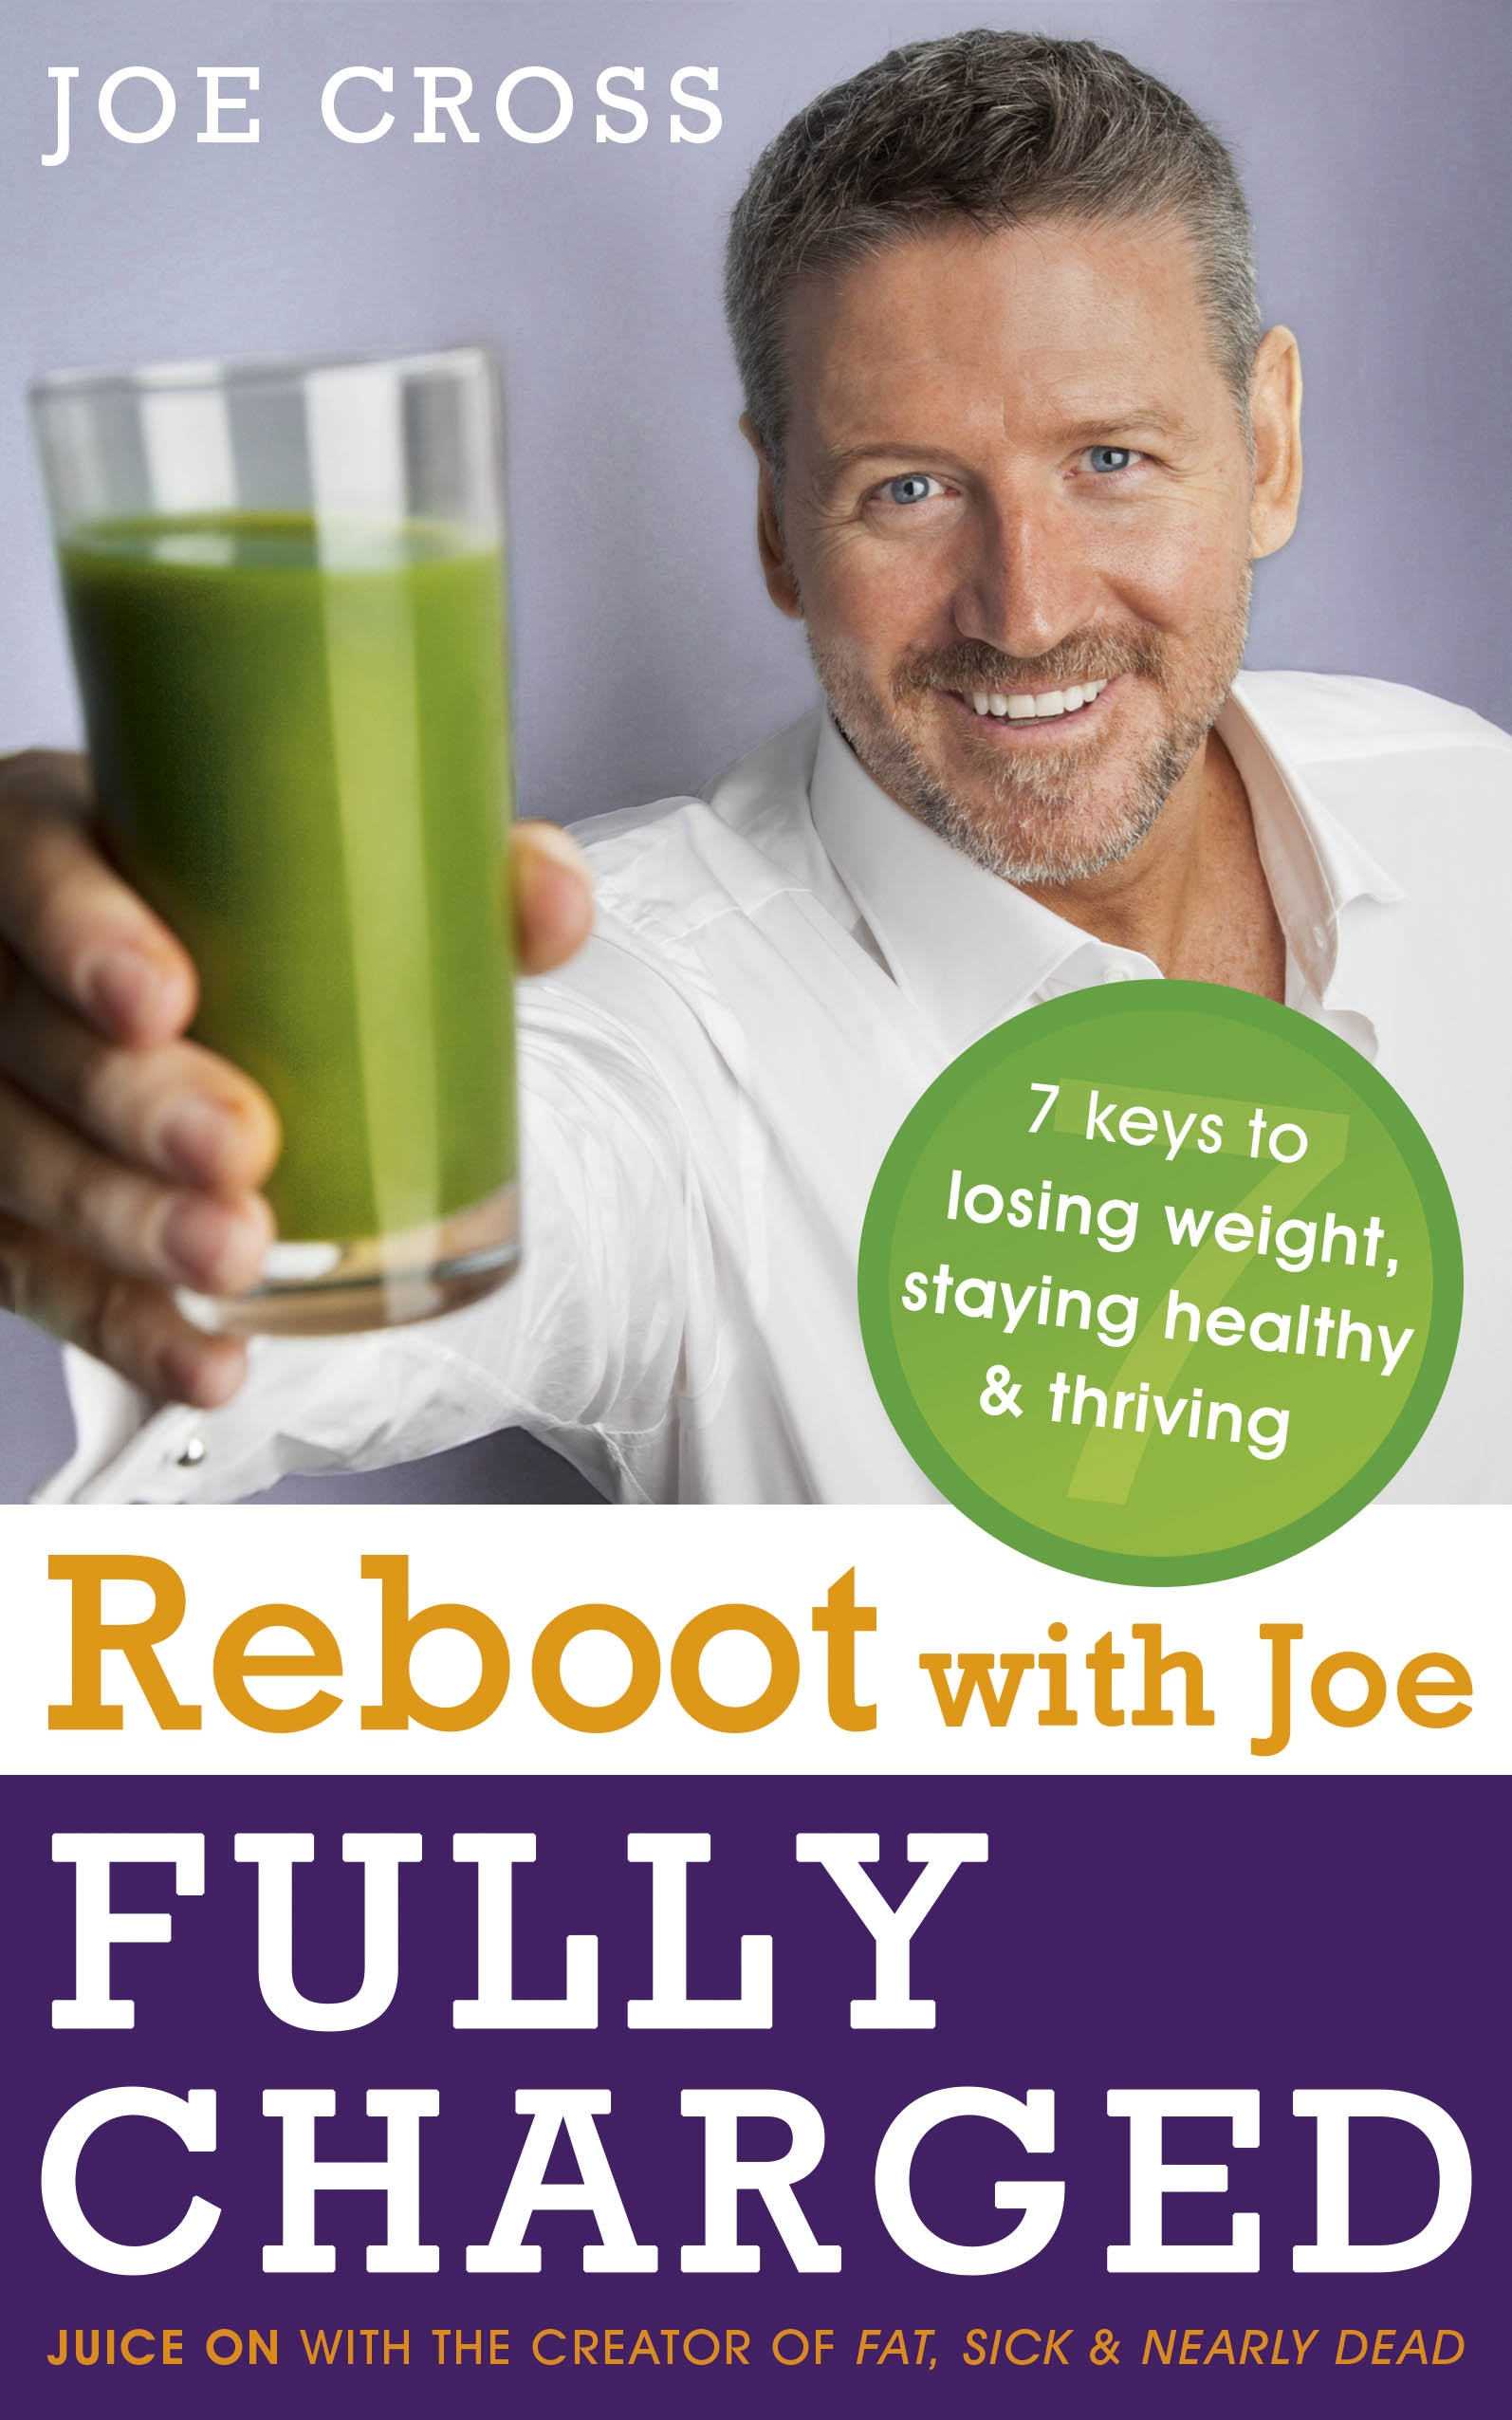 Reboot with Joe: Fully Charged - 7 Keys to Losing Weight, Staying Healthy and Thriving by Joe Cross, ISBN: 9781473613485